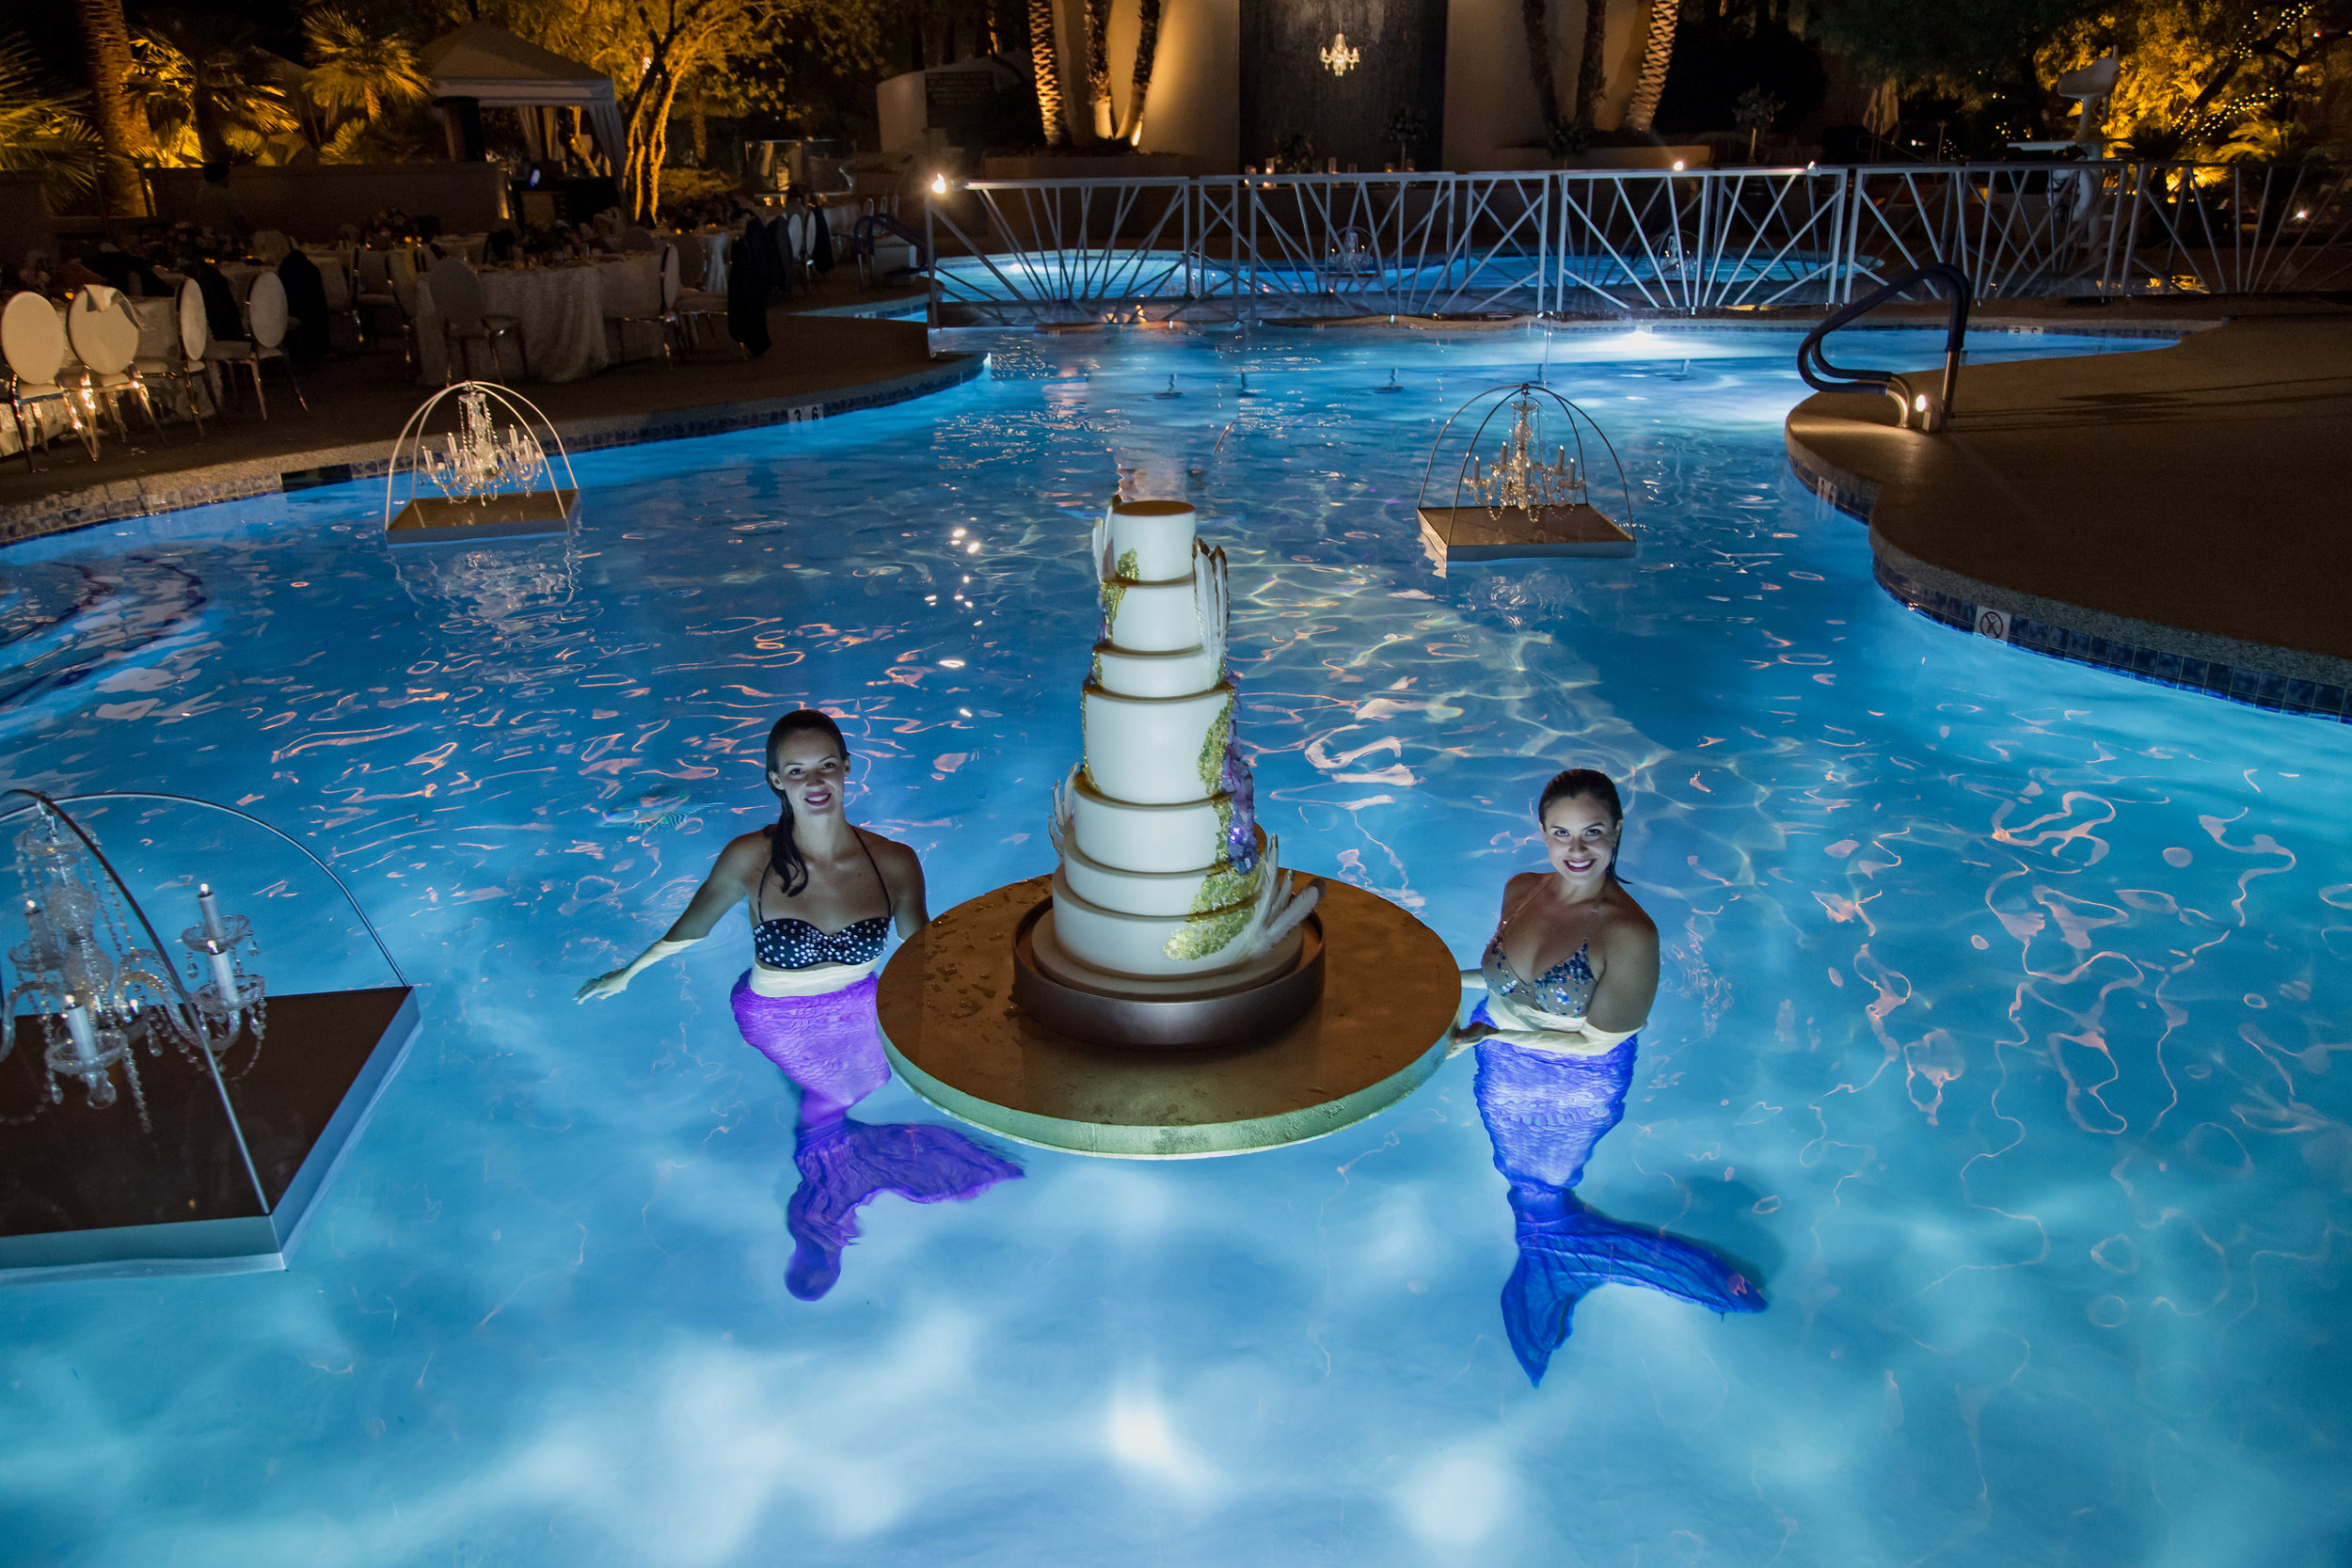 Mermaids brought the wedding cake to the edge of the pool so it could be cut. Destination Wedding Planner  Andrea Eppolito ·Photos by  Adam Frazier Photography ·Floral and Decor by  Destinations by Design · Lighting by  LED Unplugged ·Venue · Invitations  Ceci New York  · Menus by  Alligator Soup